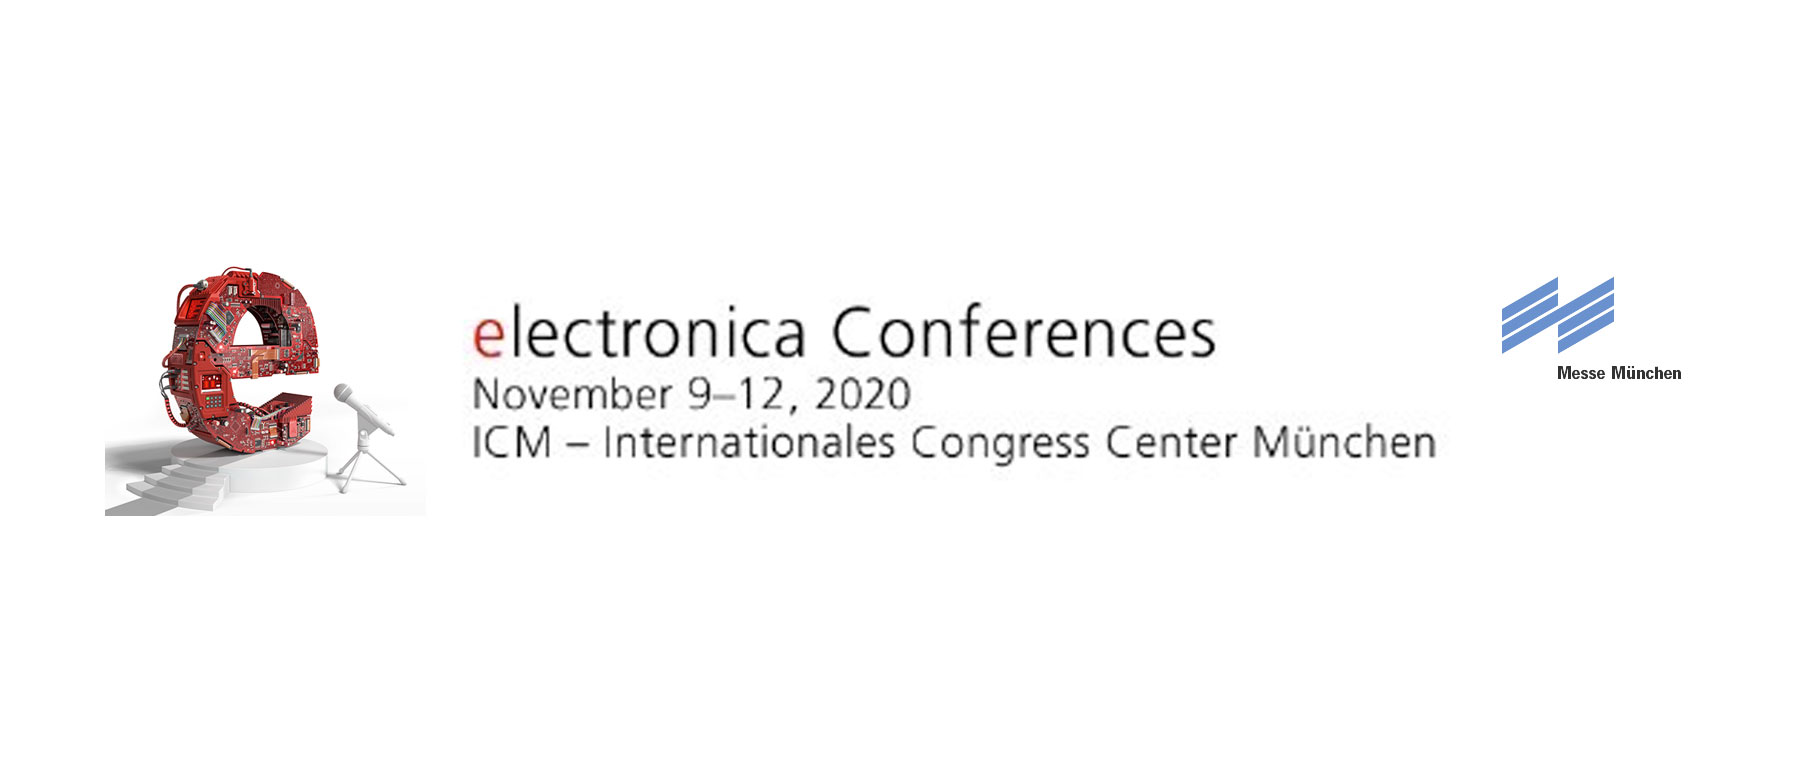 electronica-conferences-2020-12-9